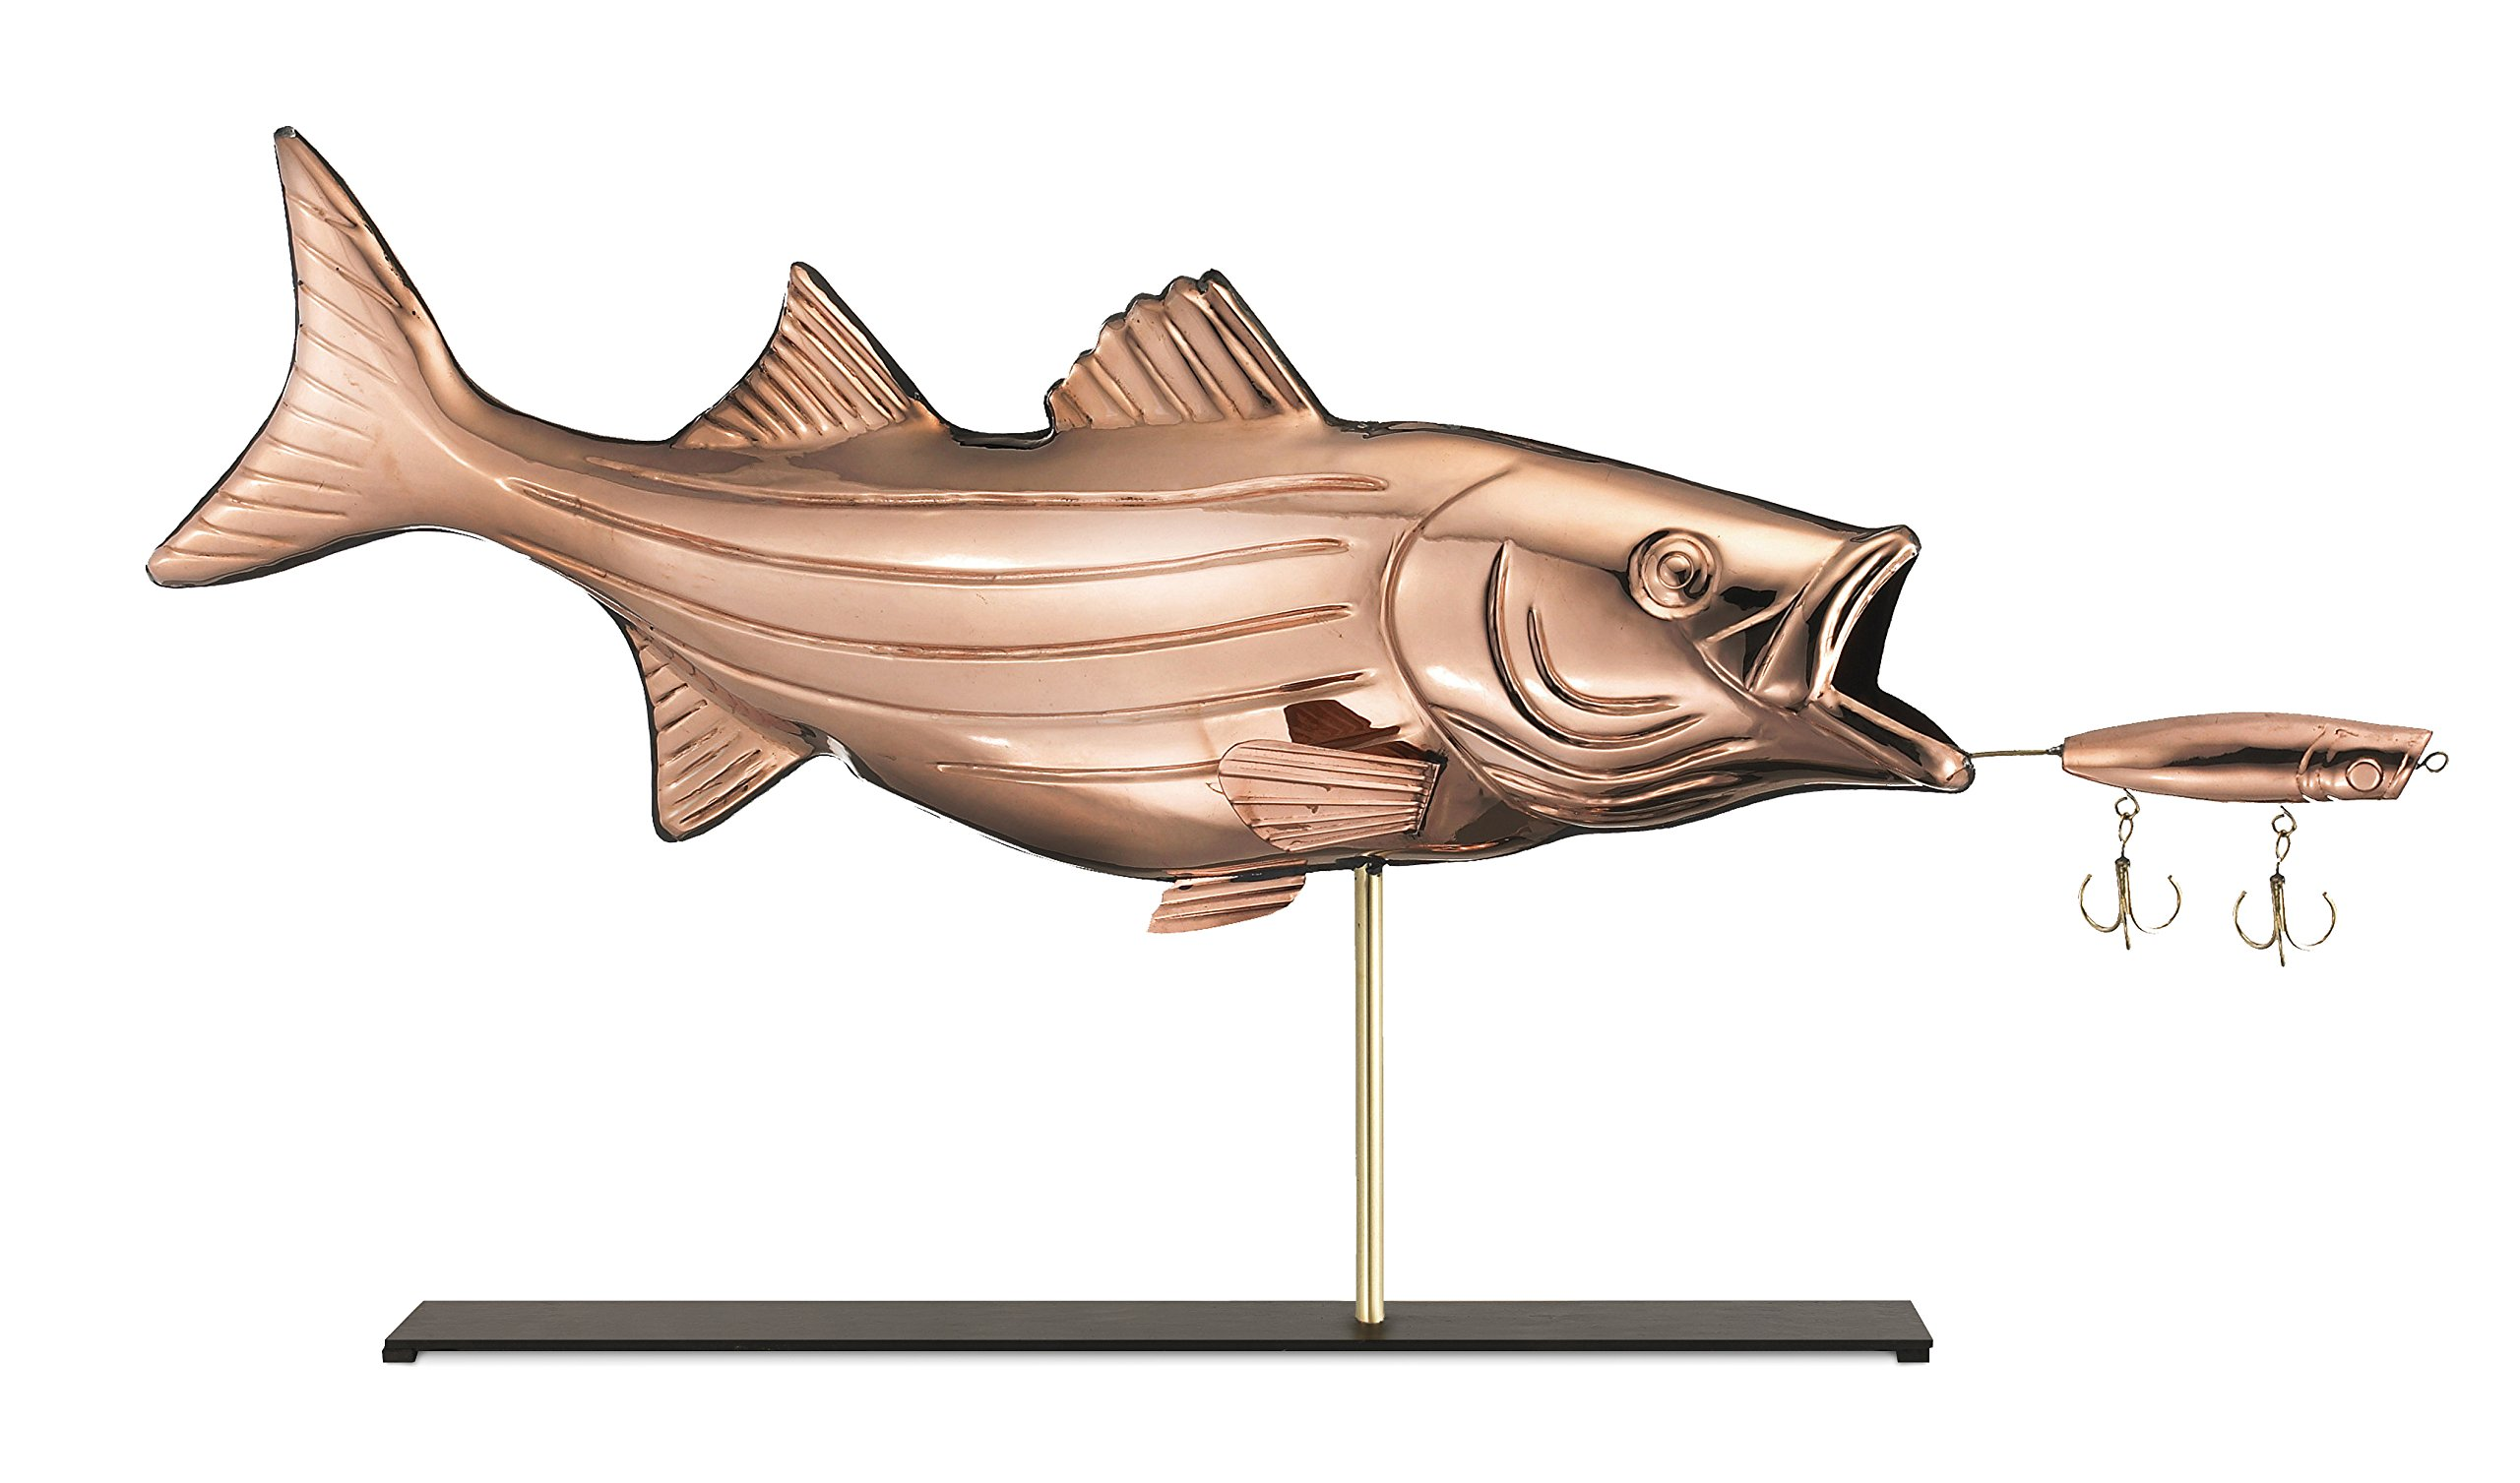 Good Directions Bass with Lure Weathervane Sculpture on Mantel / Fireplace Stand, Pure Copper, Sporting Home Décor, Tabletop Accent